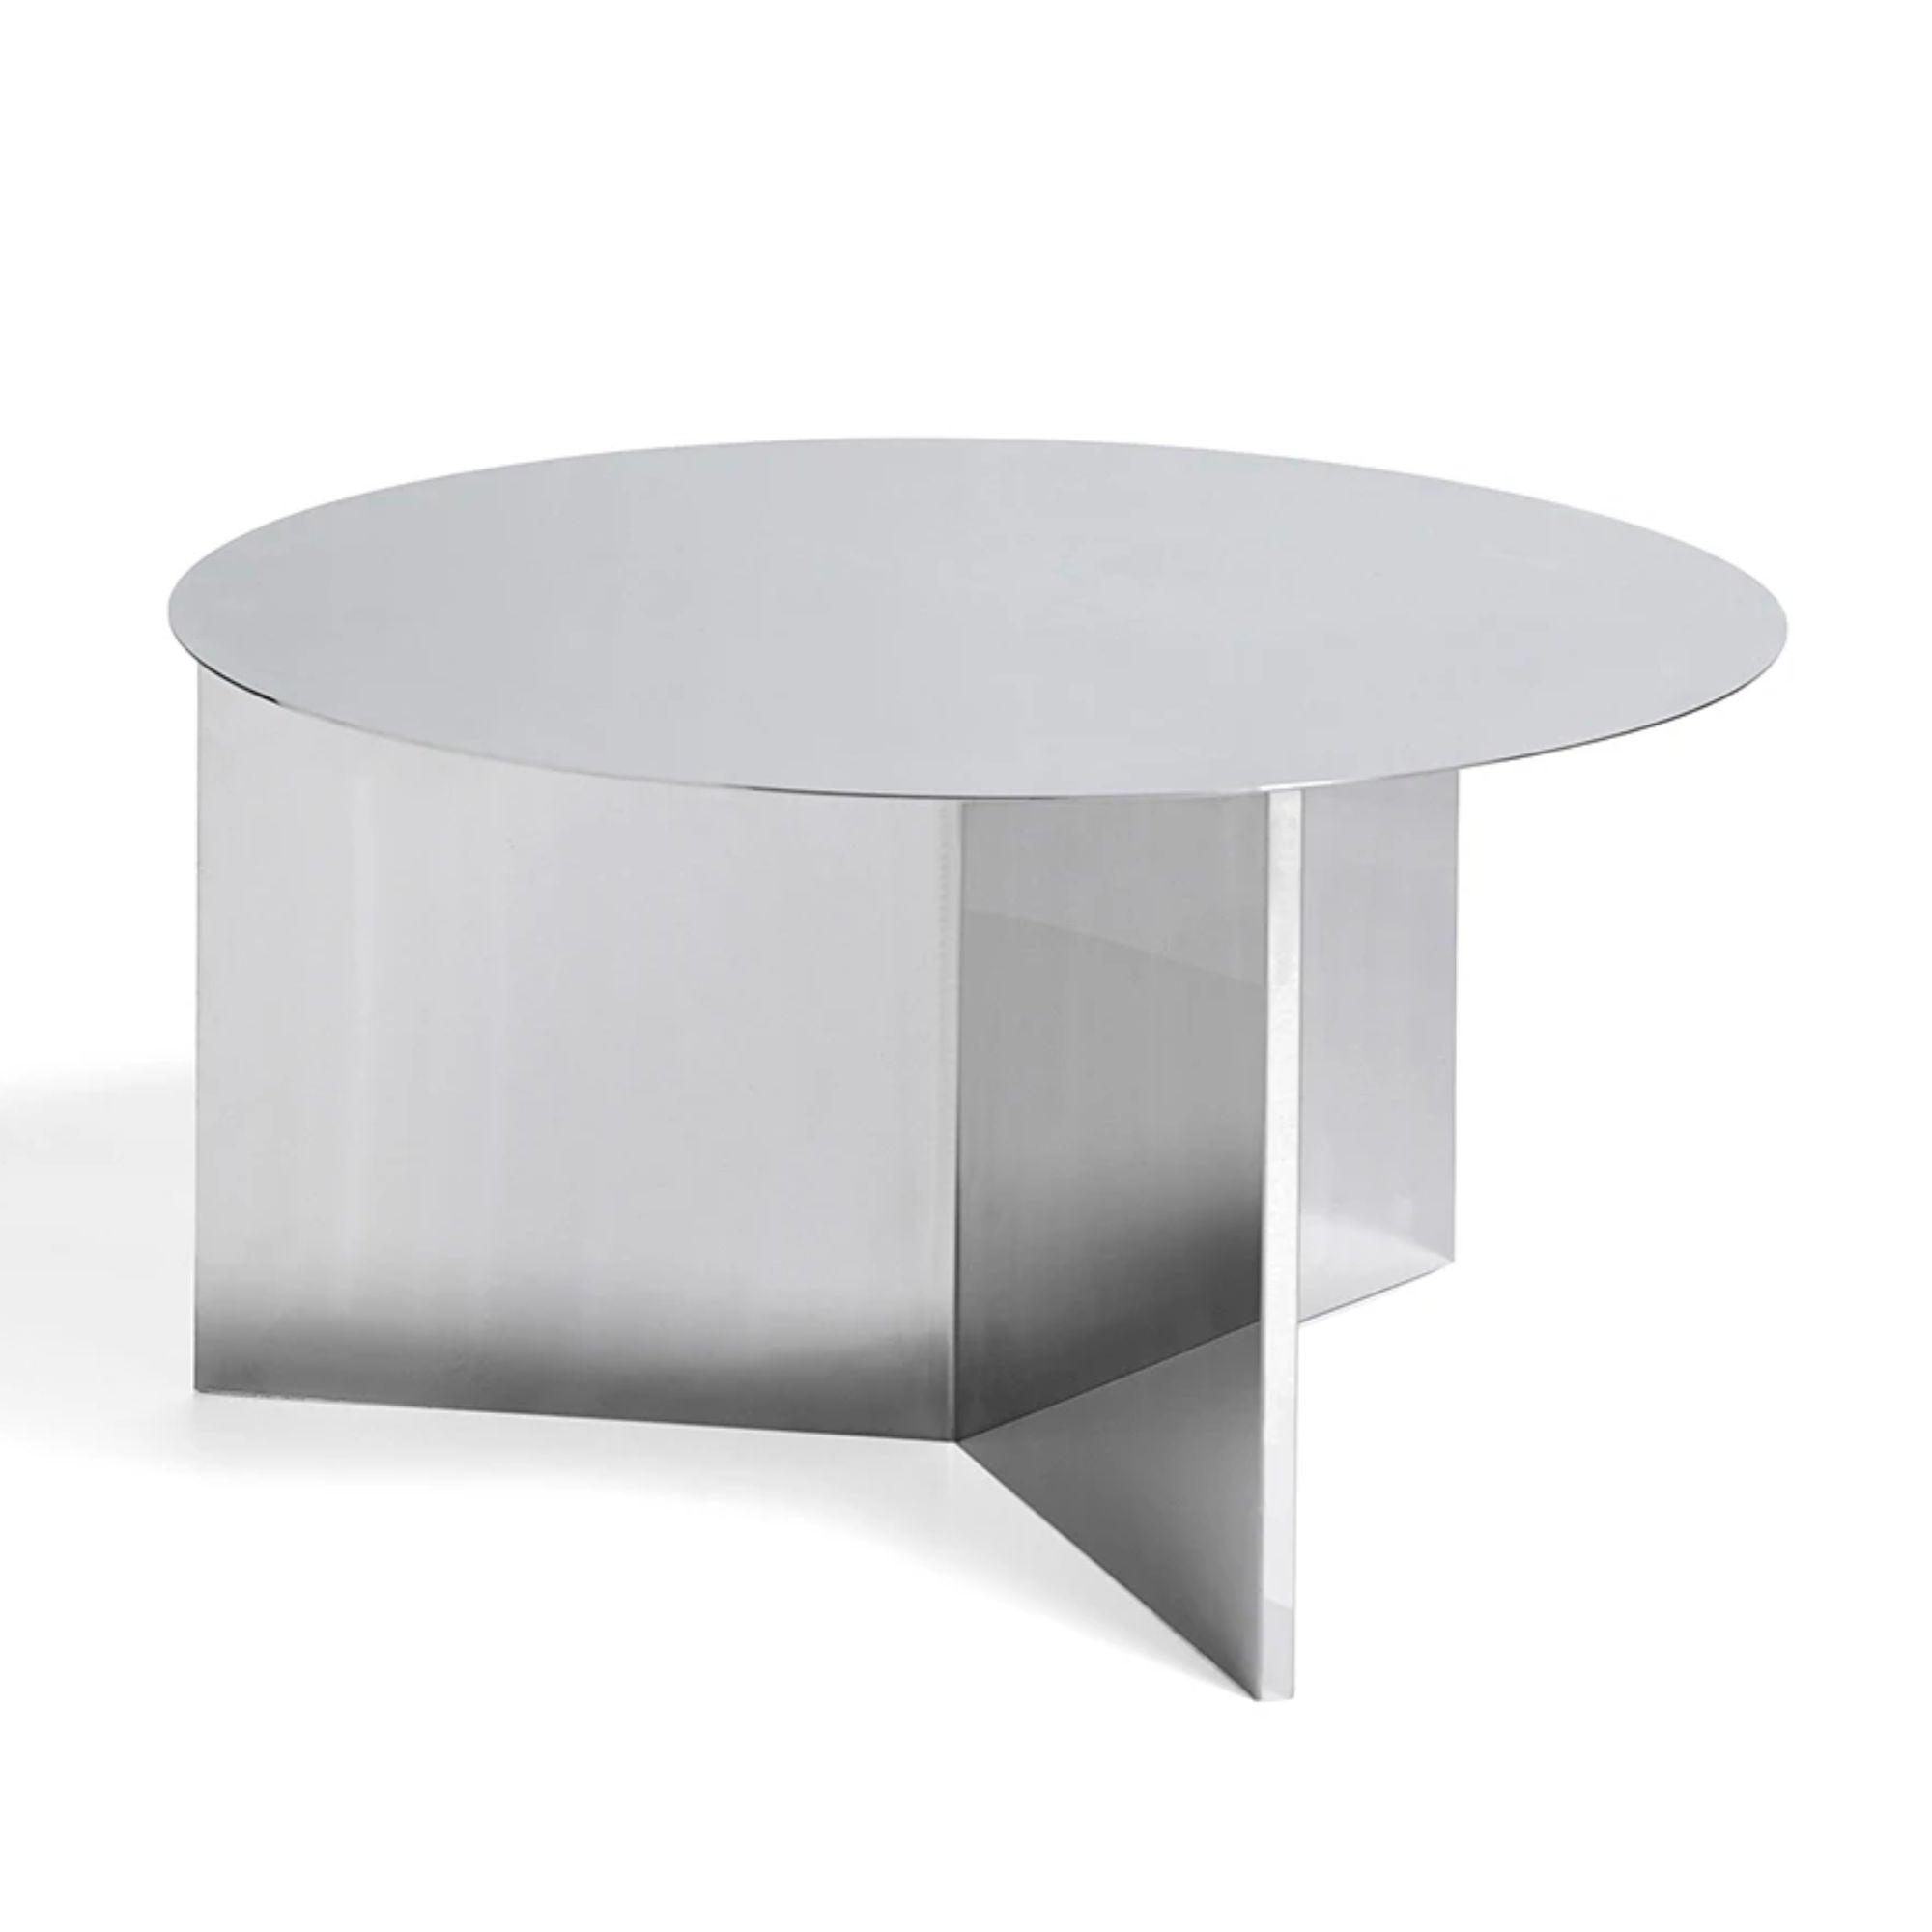 Hay Slit Coffee Table Round XL Φ65 , Mirror